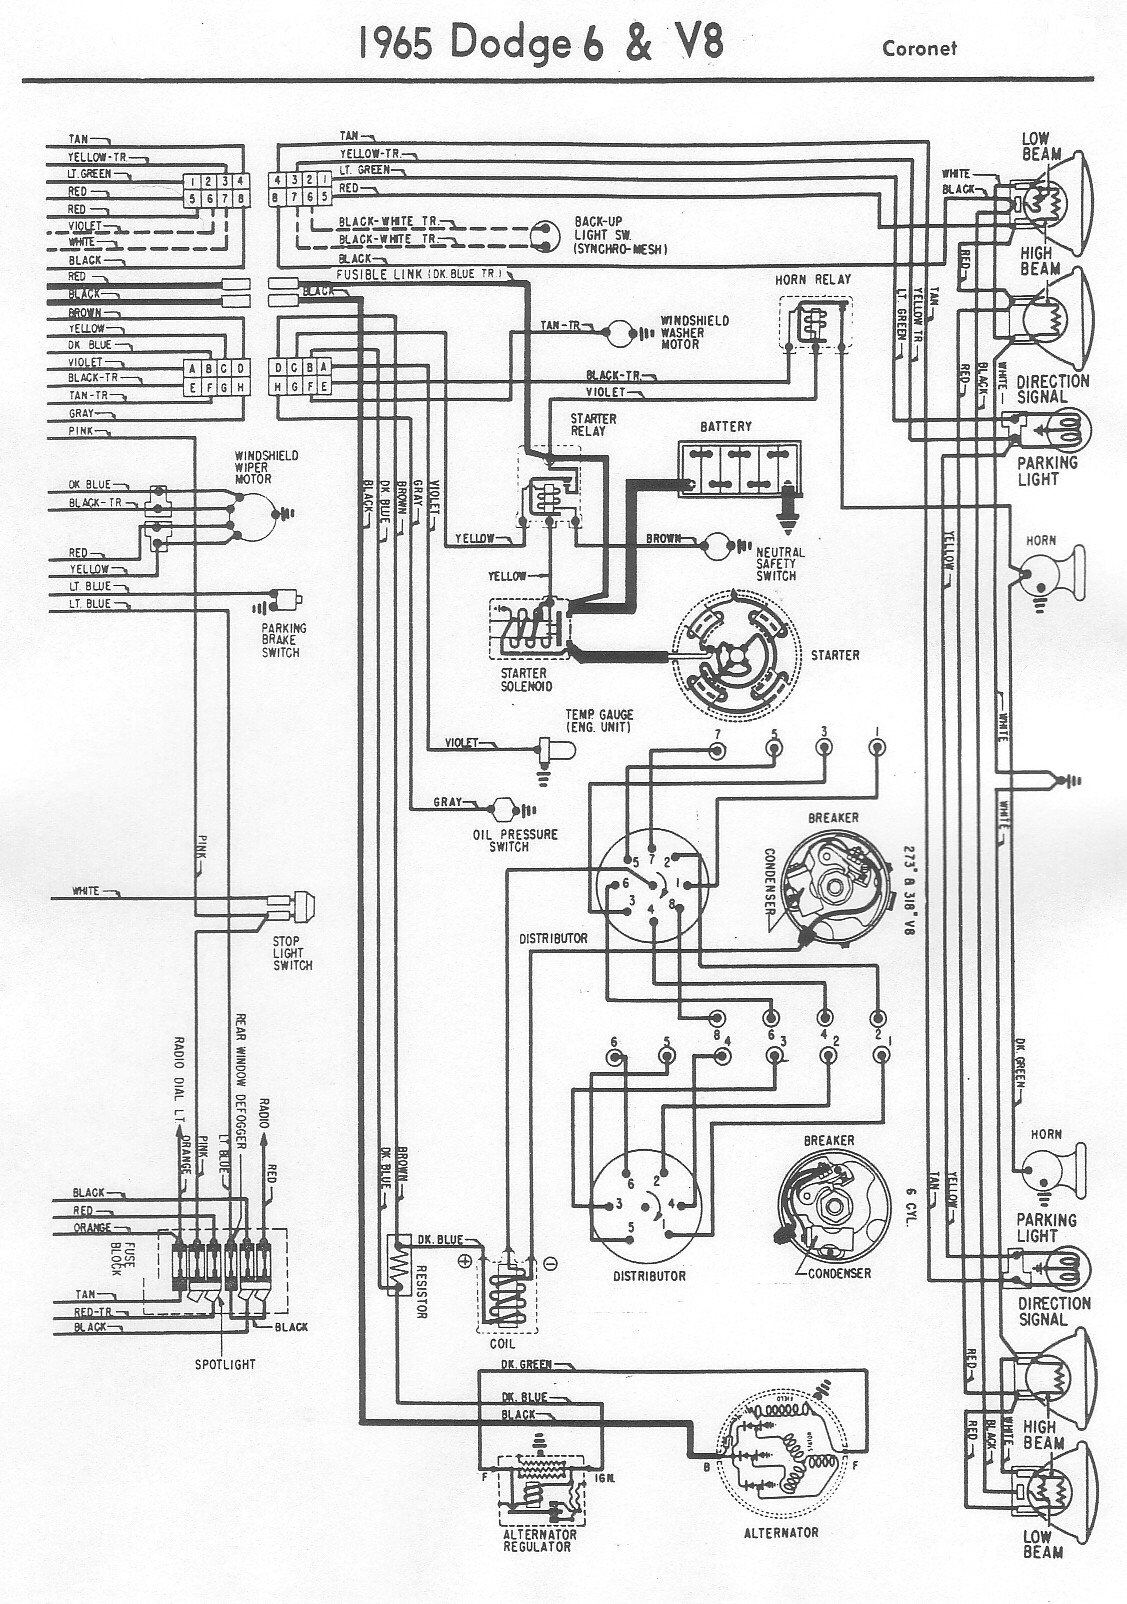 hight resolution of 1964 chrysler 300 wiring diagram wiring diagram world rh 44 fuenfuhrtee in kiribati de 1965 chrysler 300 wiring diagram 1965 chrysler 300 wiring diagram